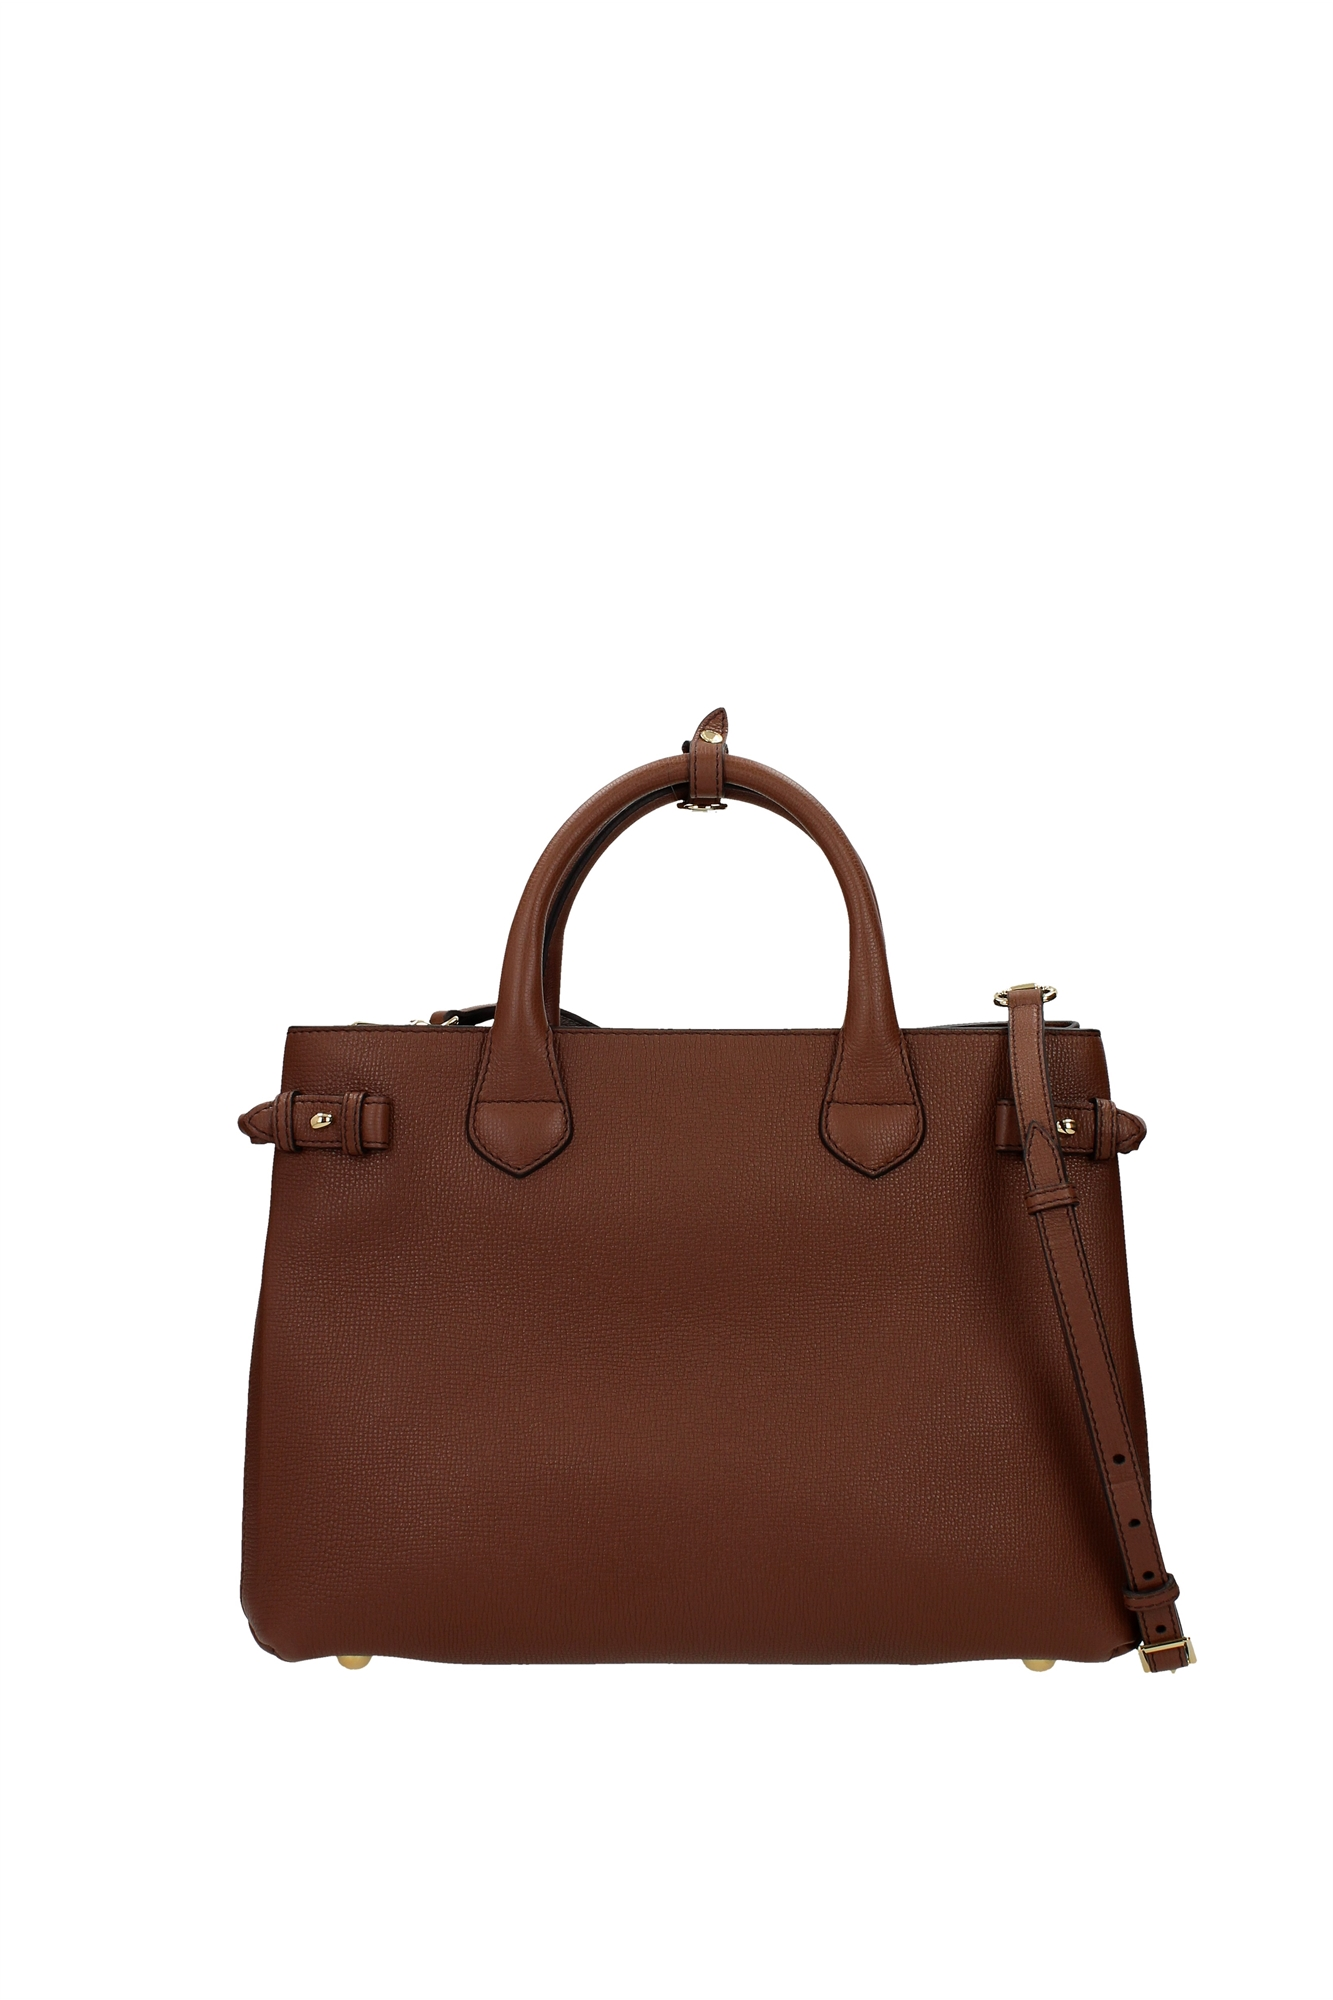 Hand Bags Burberry Women Leather Brown 3980794 | eBay